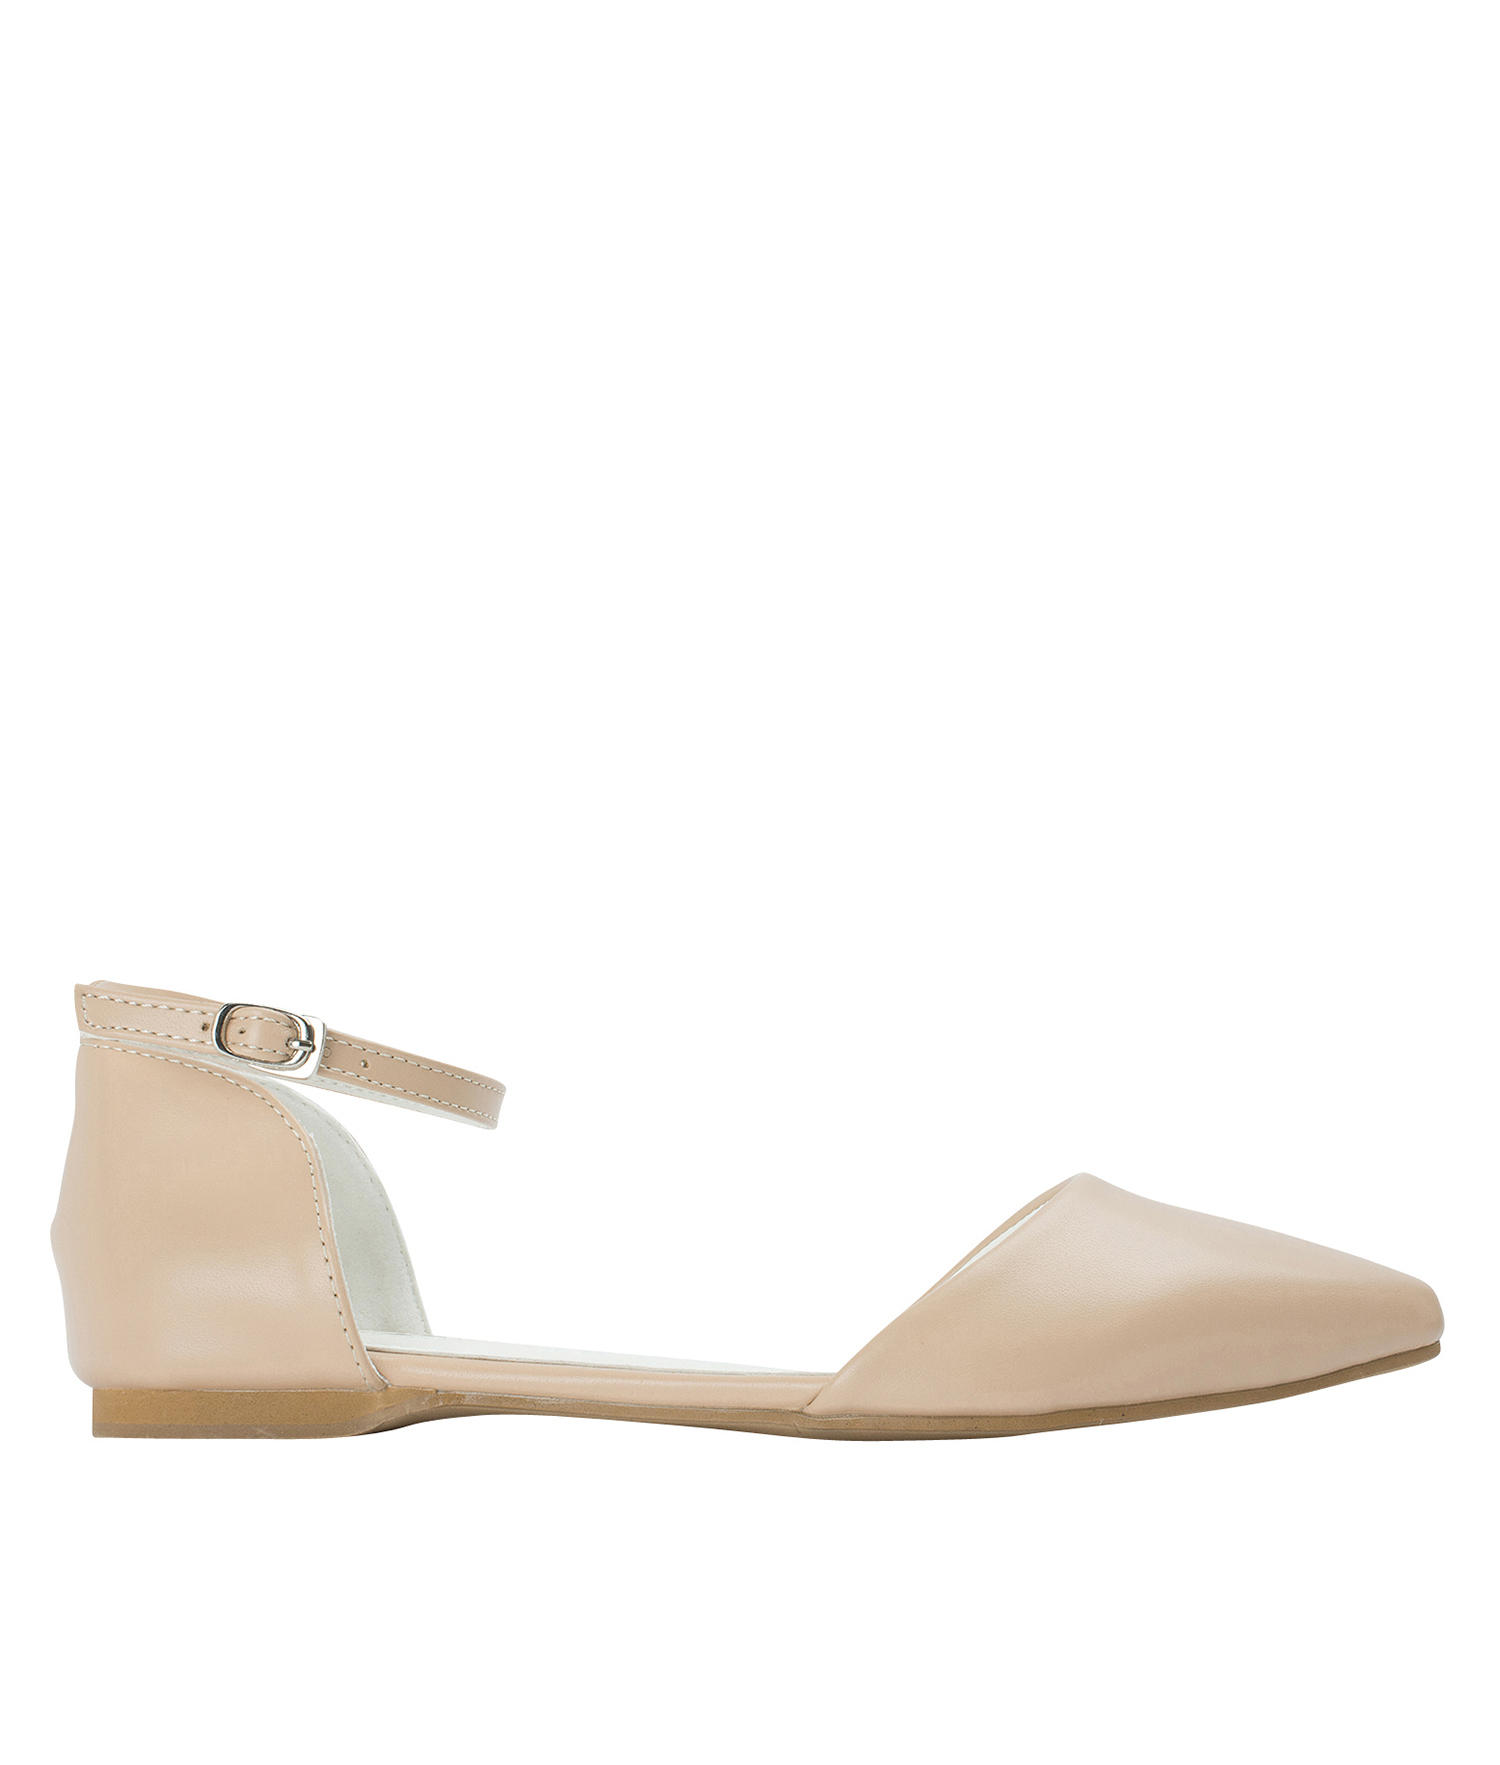 2c9113cccd2 AnnaKastle Womens Pointed Toe Ankle-Strap d Orsay Flats Nude